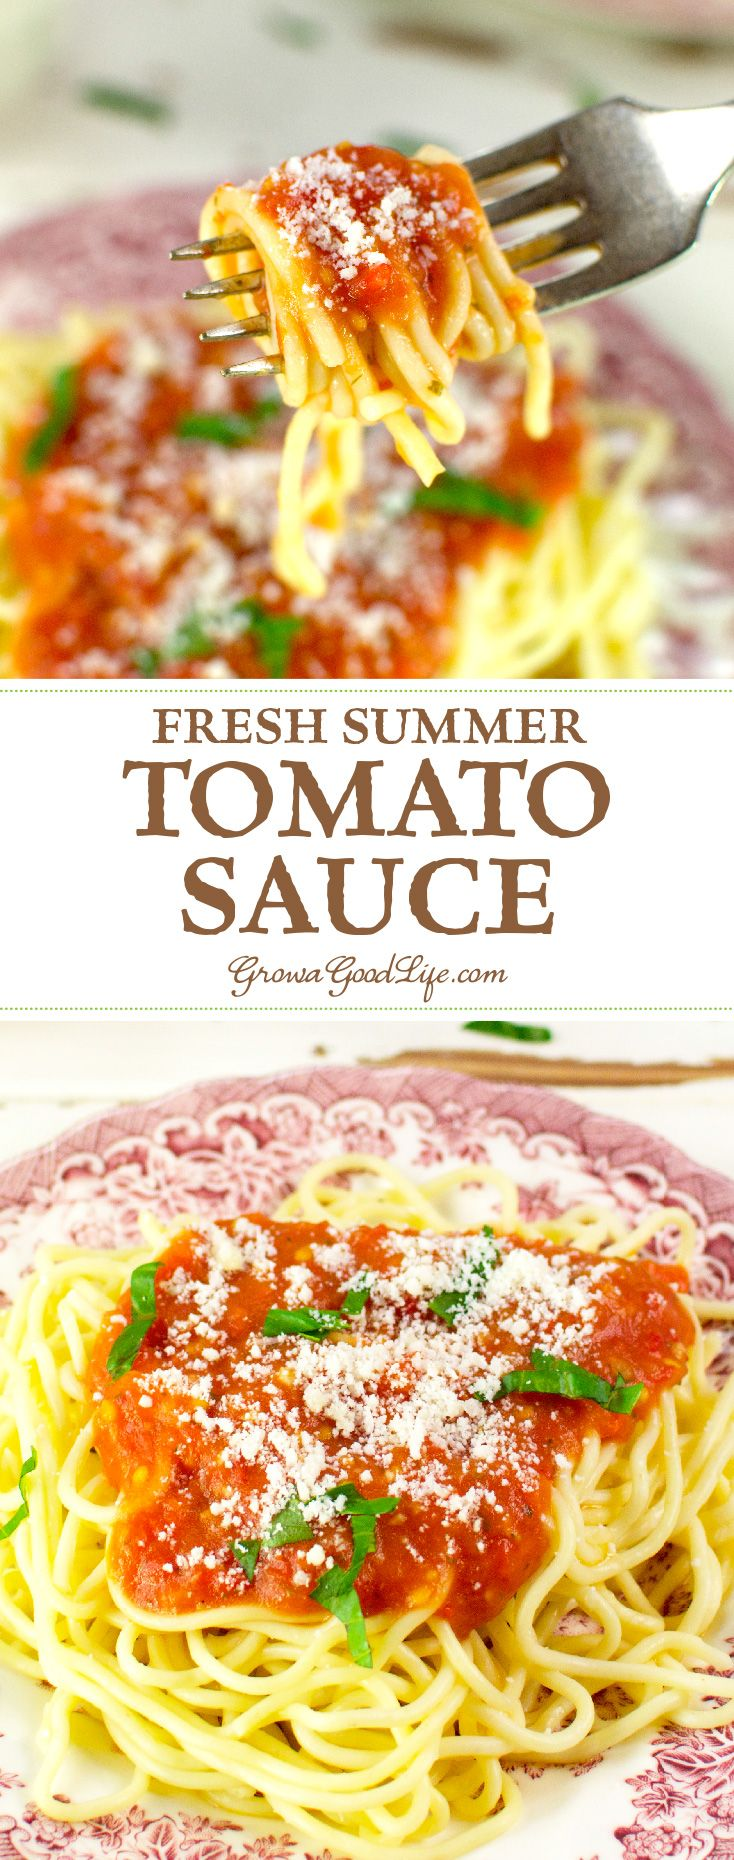 This summer tomato sauce recipe combines vine-ripened tomatoes with onions, garlic and fresh Italian herbs. It is a classic marinara sauce that comes together in about an hour.